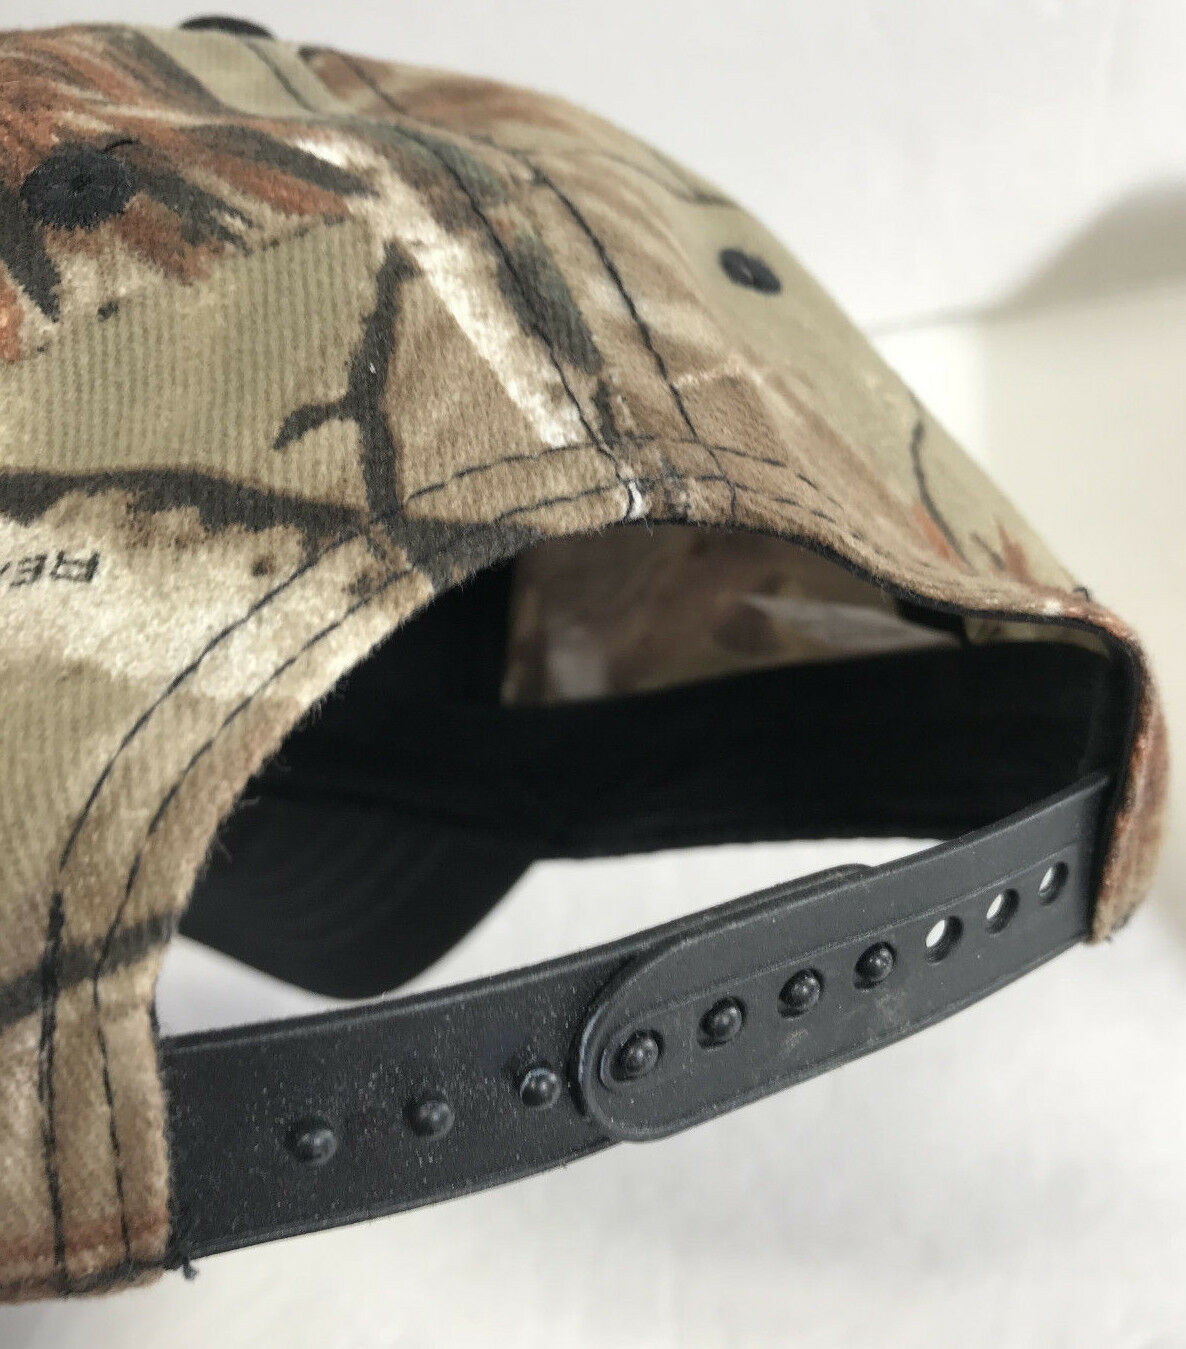 Hard Core Hunter Snapback Hat Realtree Camo Rifle Deer Skull Baseball Cap